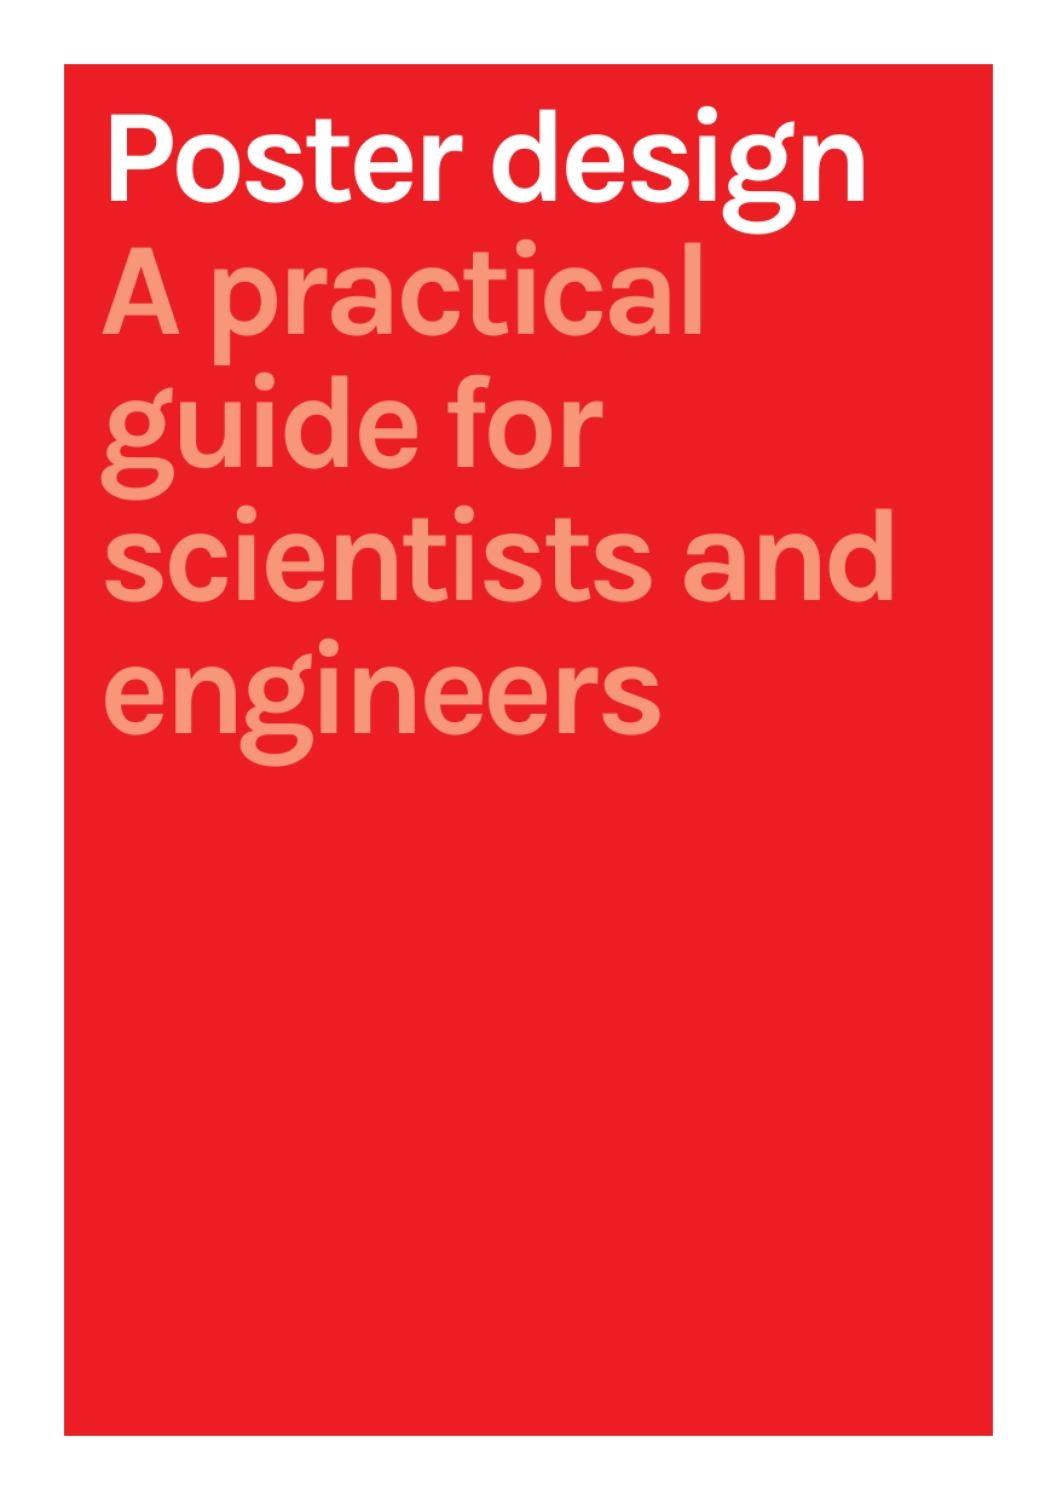 DesignScience_BSA_poster guide by Anne Odling-Smee - issuu